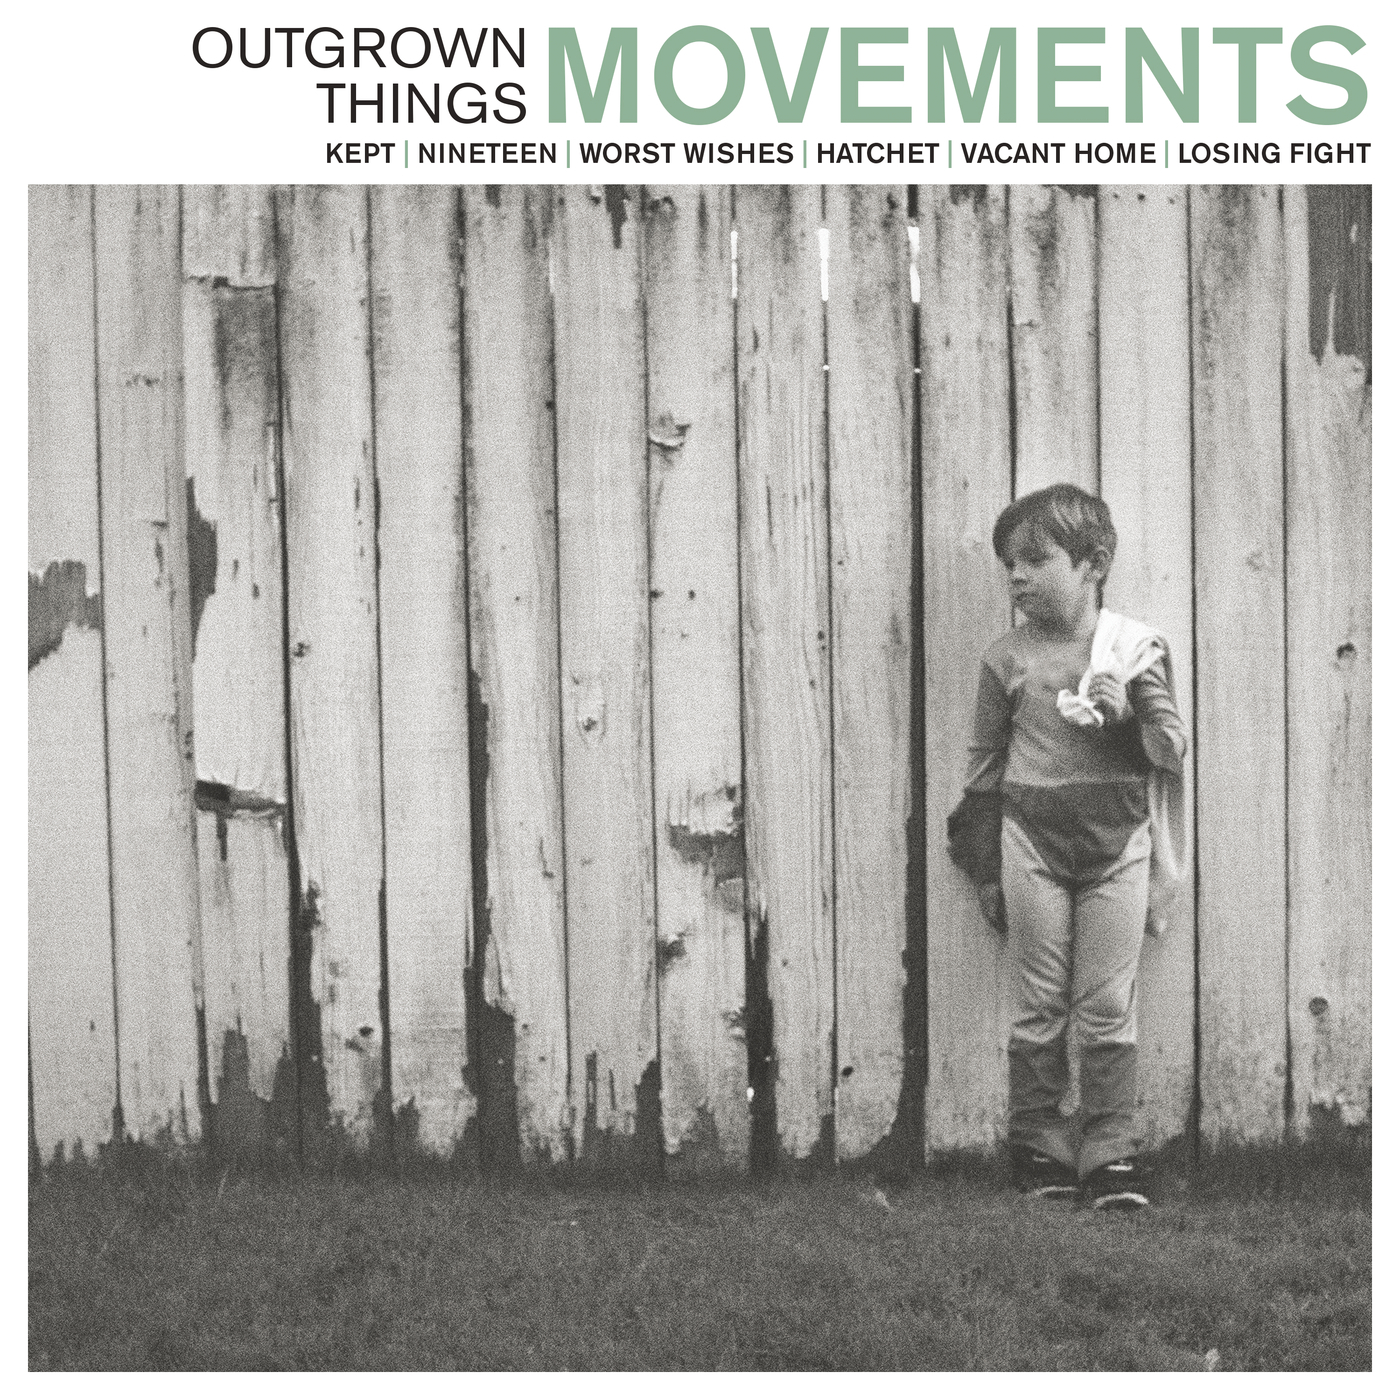 Movements - Outgrown Things [EP] (2016)